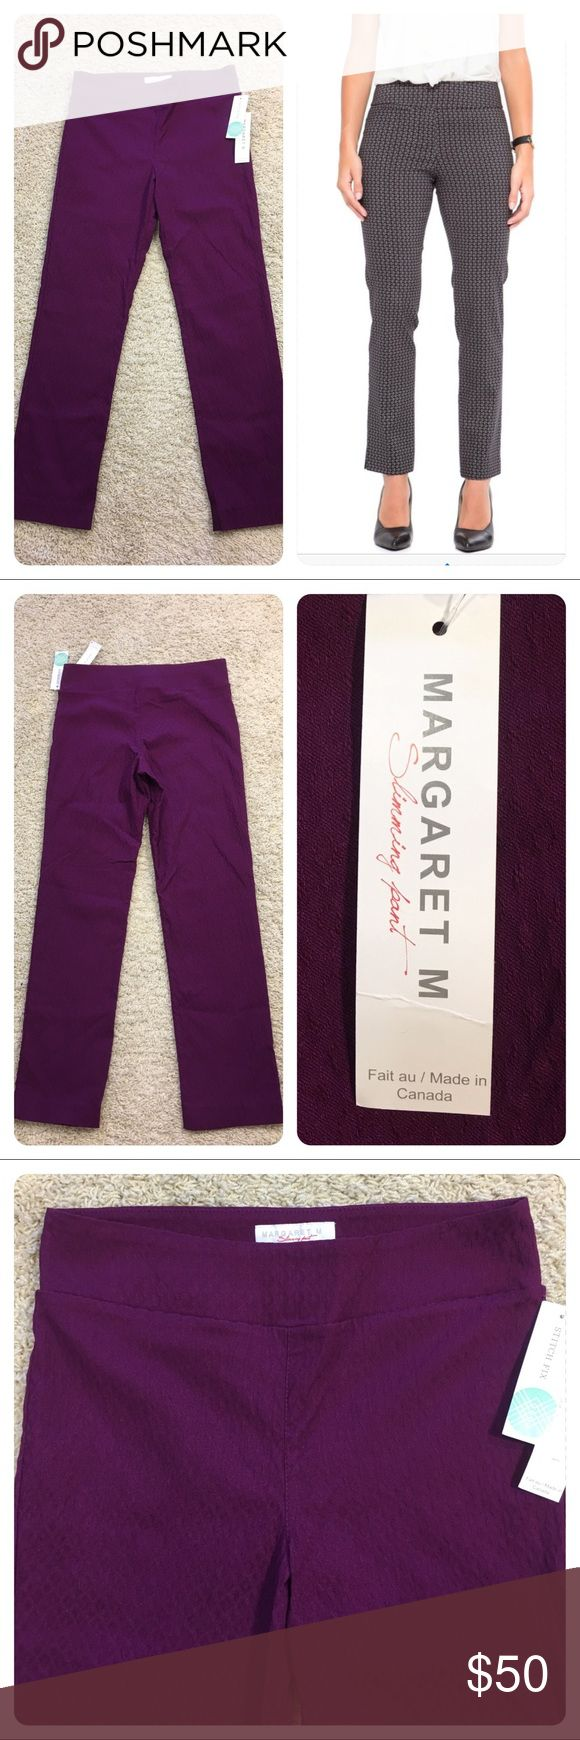 NWT! Stitch Fix Margaret M straight leg  pant New with tags!  Stitch Fix Margaret M  - Printed Slimming Straight Leg Pant. Beautiful jewel tone purple.  Slimming Pants Our guiding principals for our slimming pants: Versatility is key to streamlining your wardrobe;  Quality will assure you comfort and easy care; And fit is everything.  First pic is another style of the Margaret M slimming pant. Stitch Fix Pants